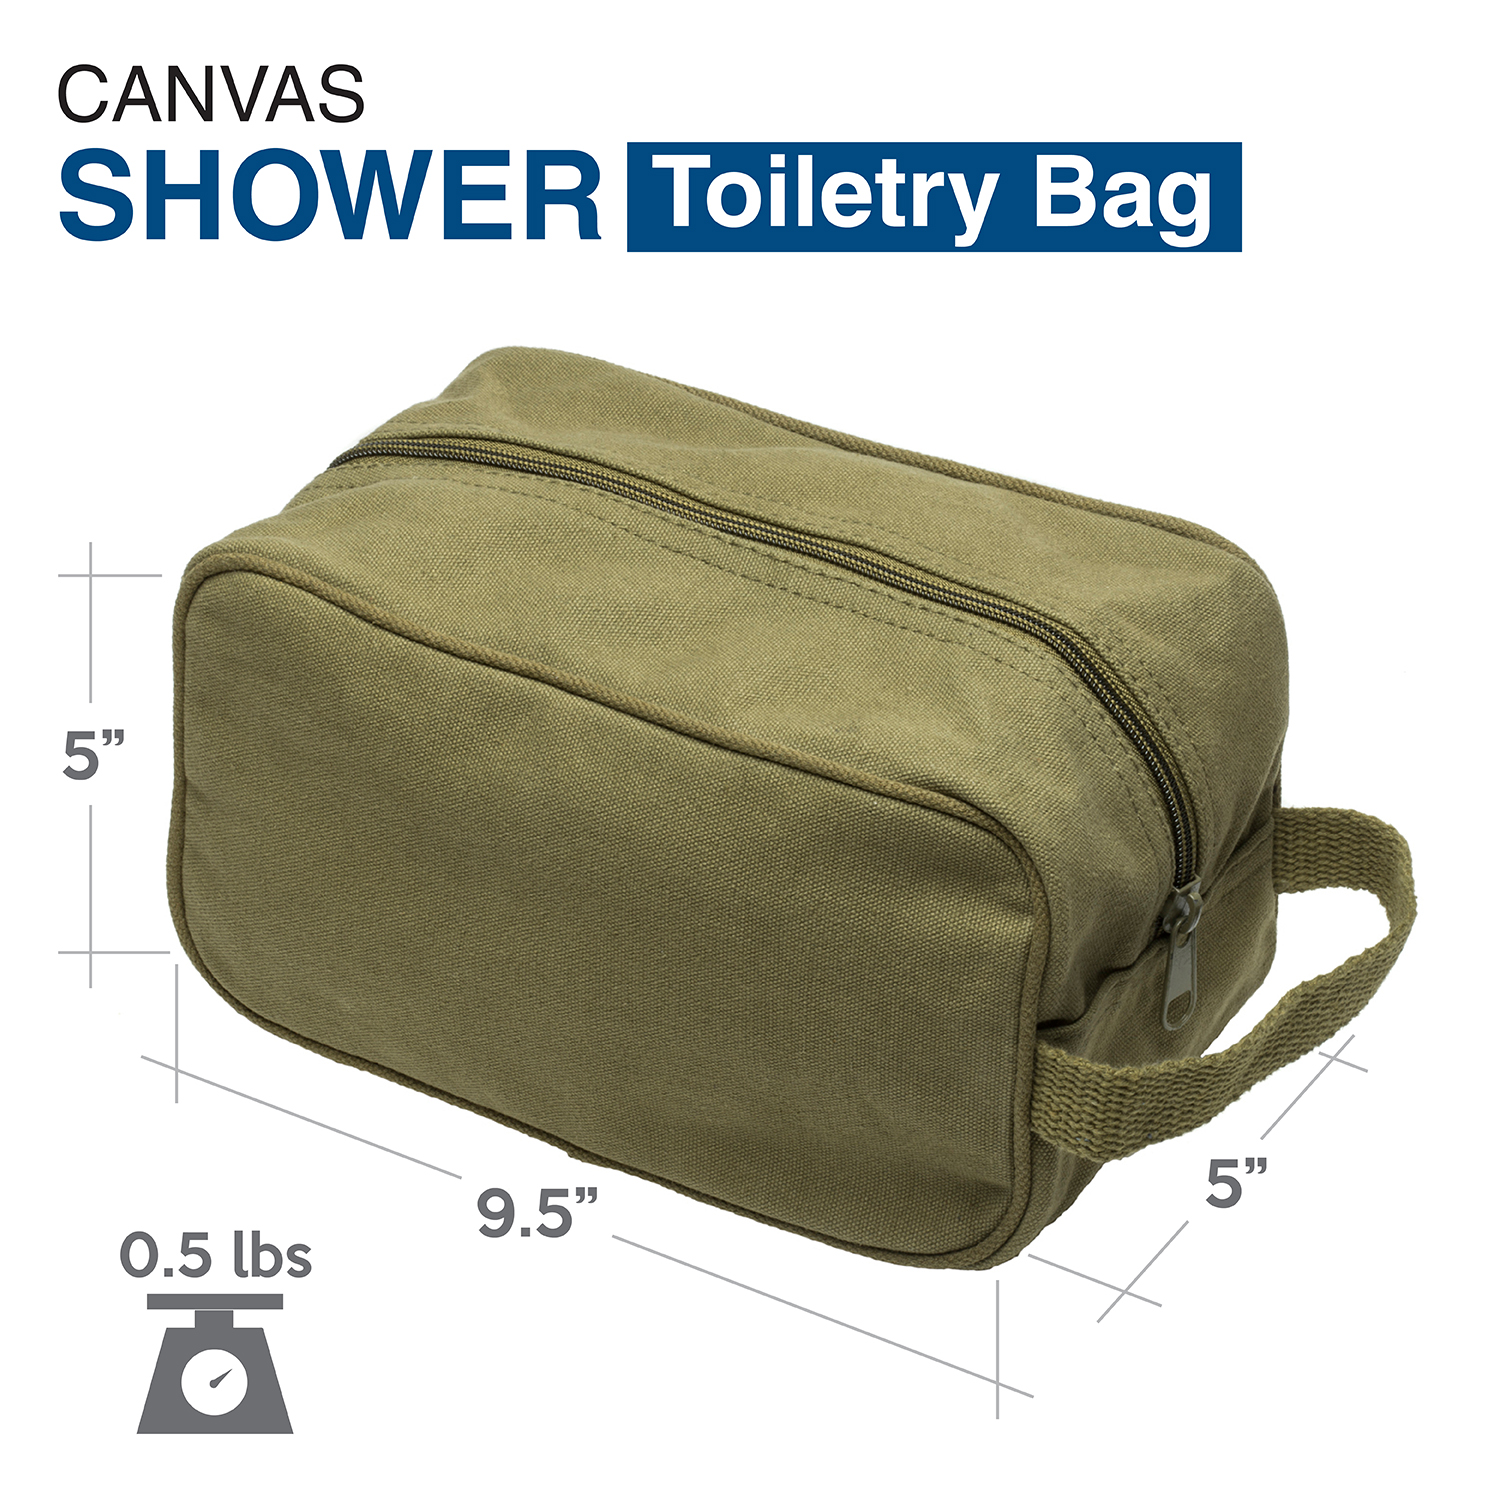 Ruger-Firearms-Canvas-Shower-Kit-Travel-Toiletry-Bag-Case thumbnail 11